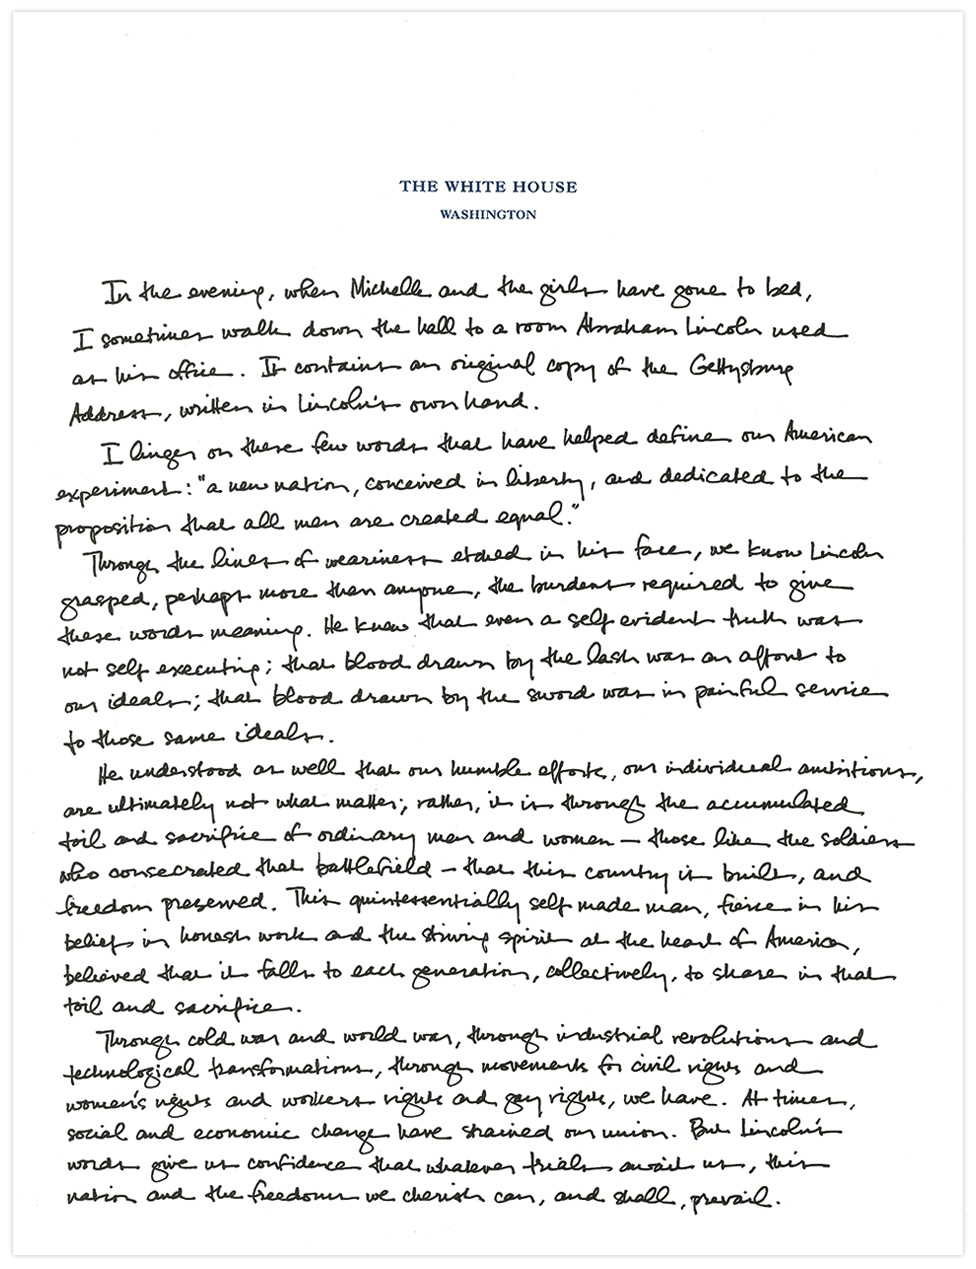 president obama s handwritten essay marking the 150th anniversary president obama s handwritten essay marking the 150th anniversary of the gettysburg address